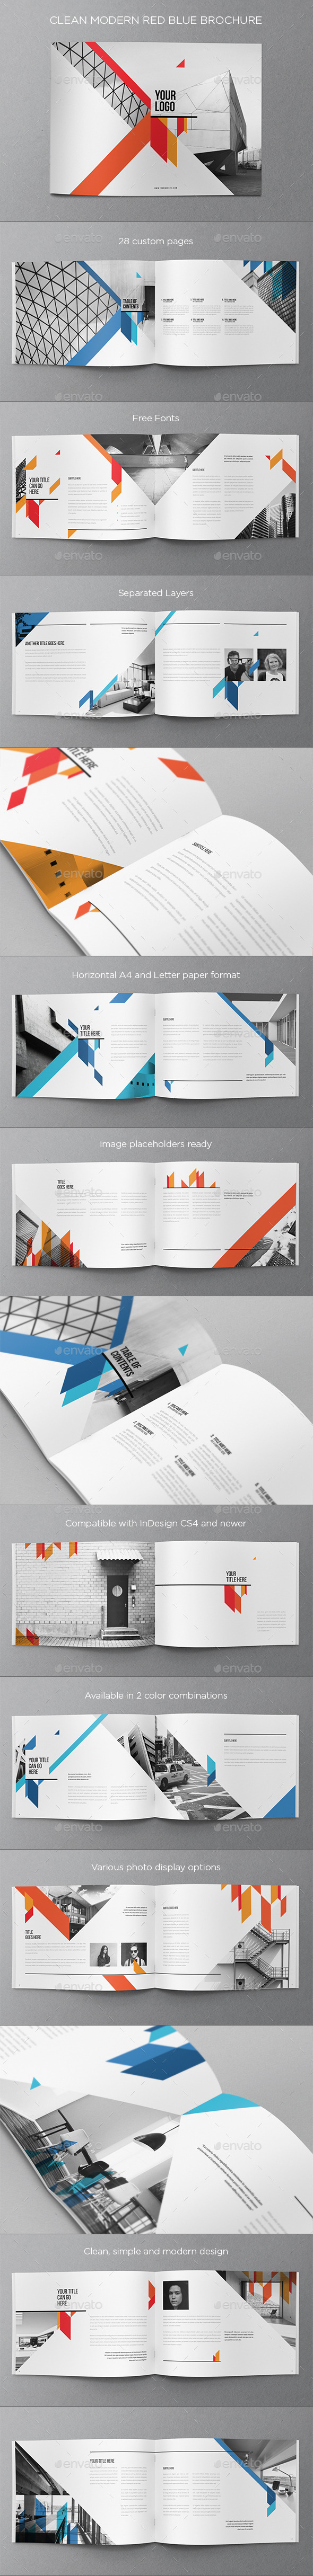 Clean Modern Red Blue Brochure - Brochures Print Templates